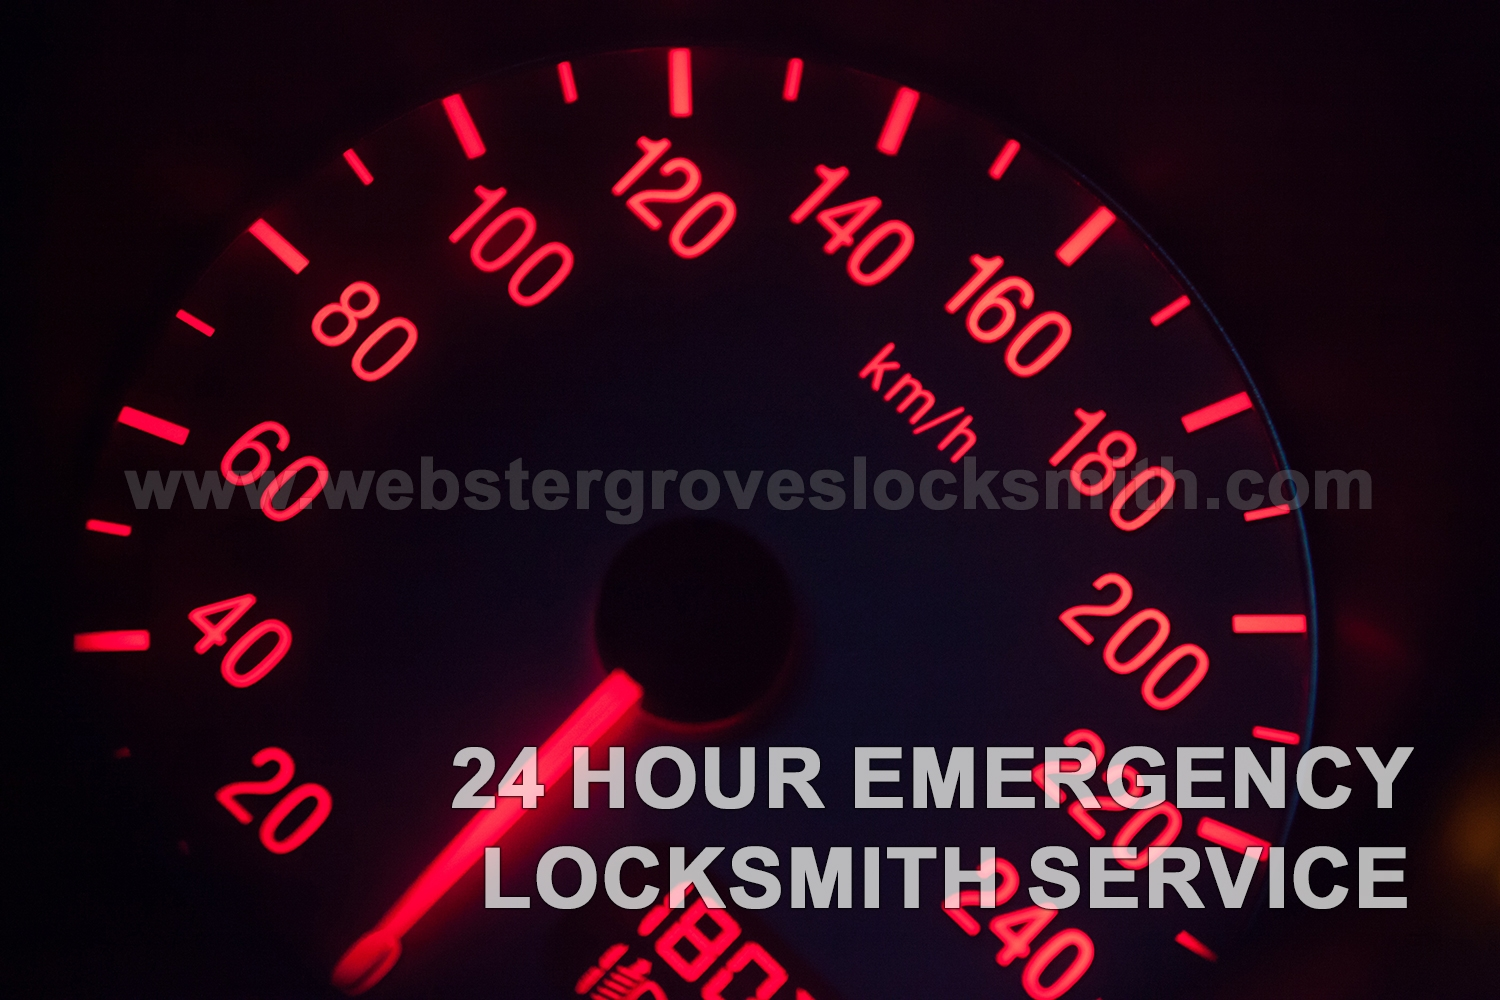 Ray's Locksmith Service (@webstergroveslocks123) Cover Image